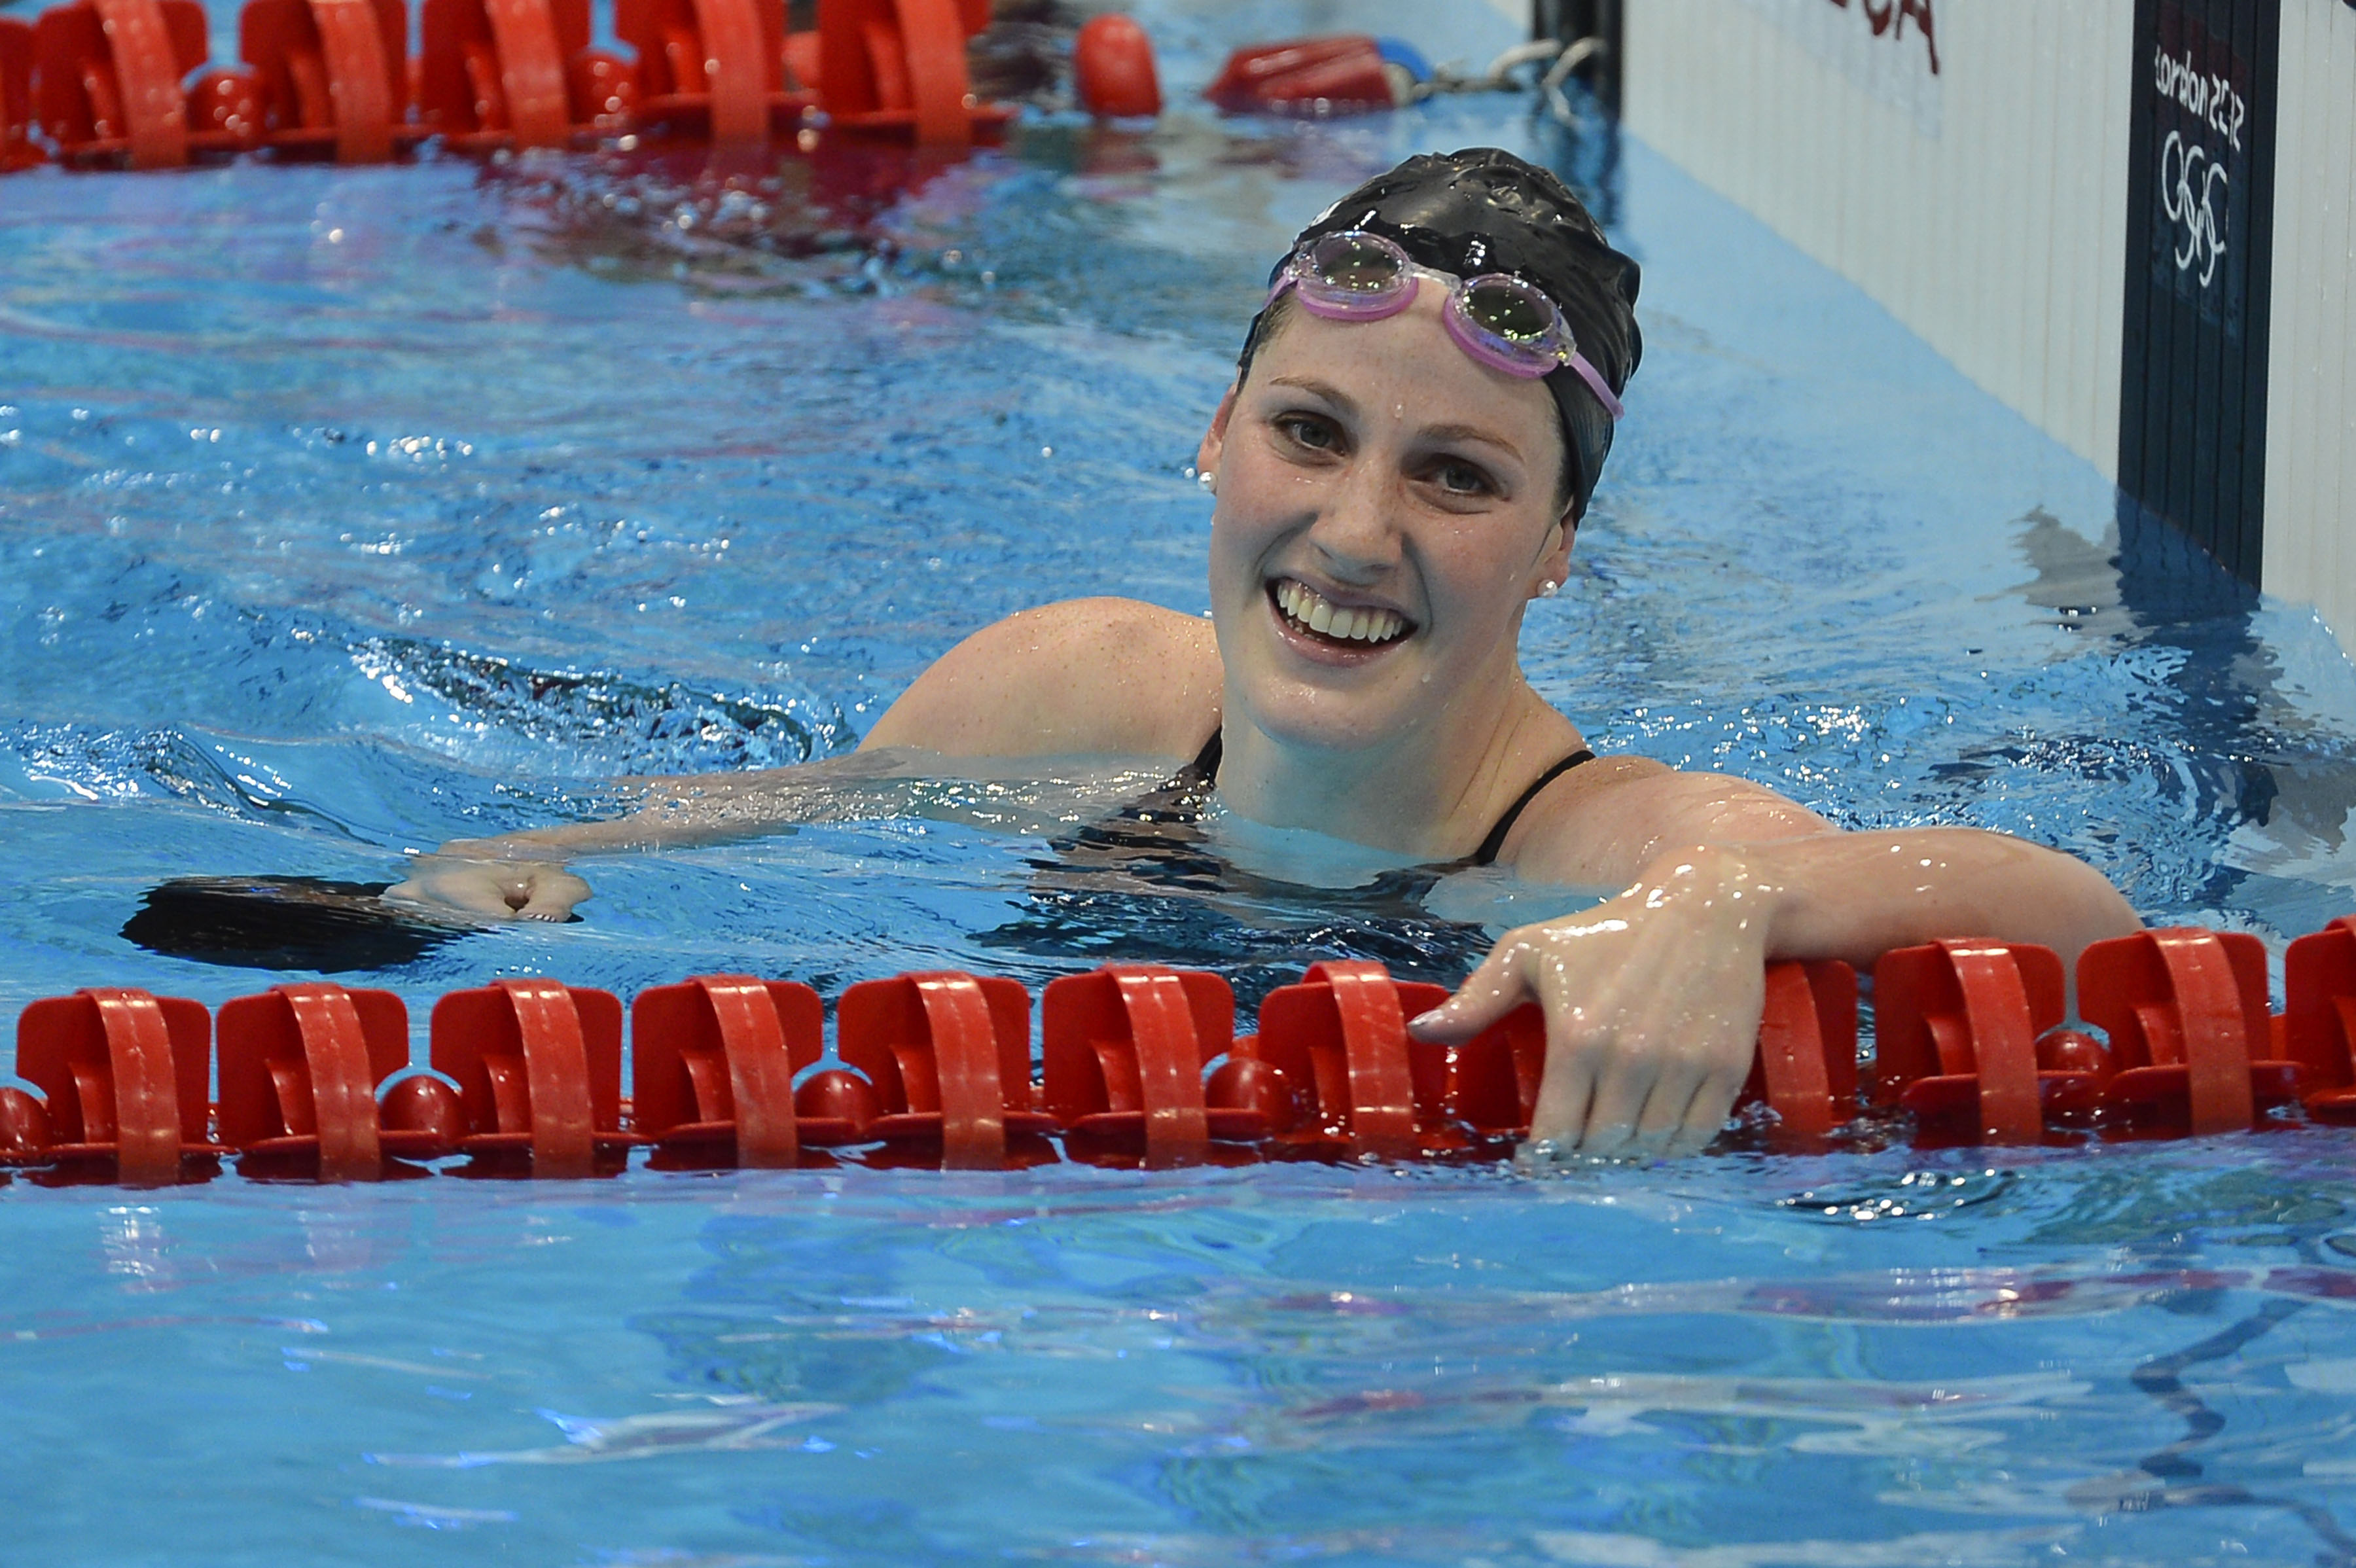 US swimmer Missy Franklin celebrates winning the women's 100m backstroke final swimming event at the London 2012 Olympic Games on July 30, 2012 in London. (credit: ODD ANDERSEN/AFP/GettyImages)